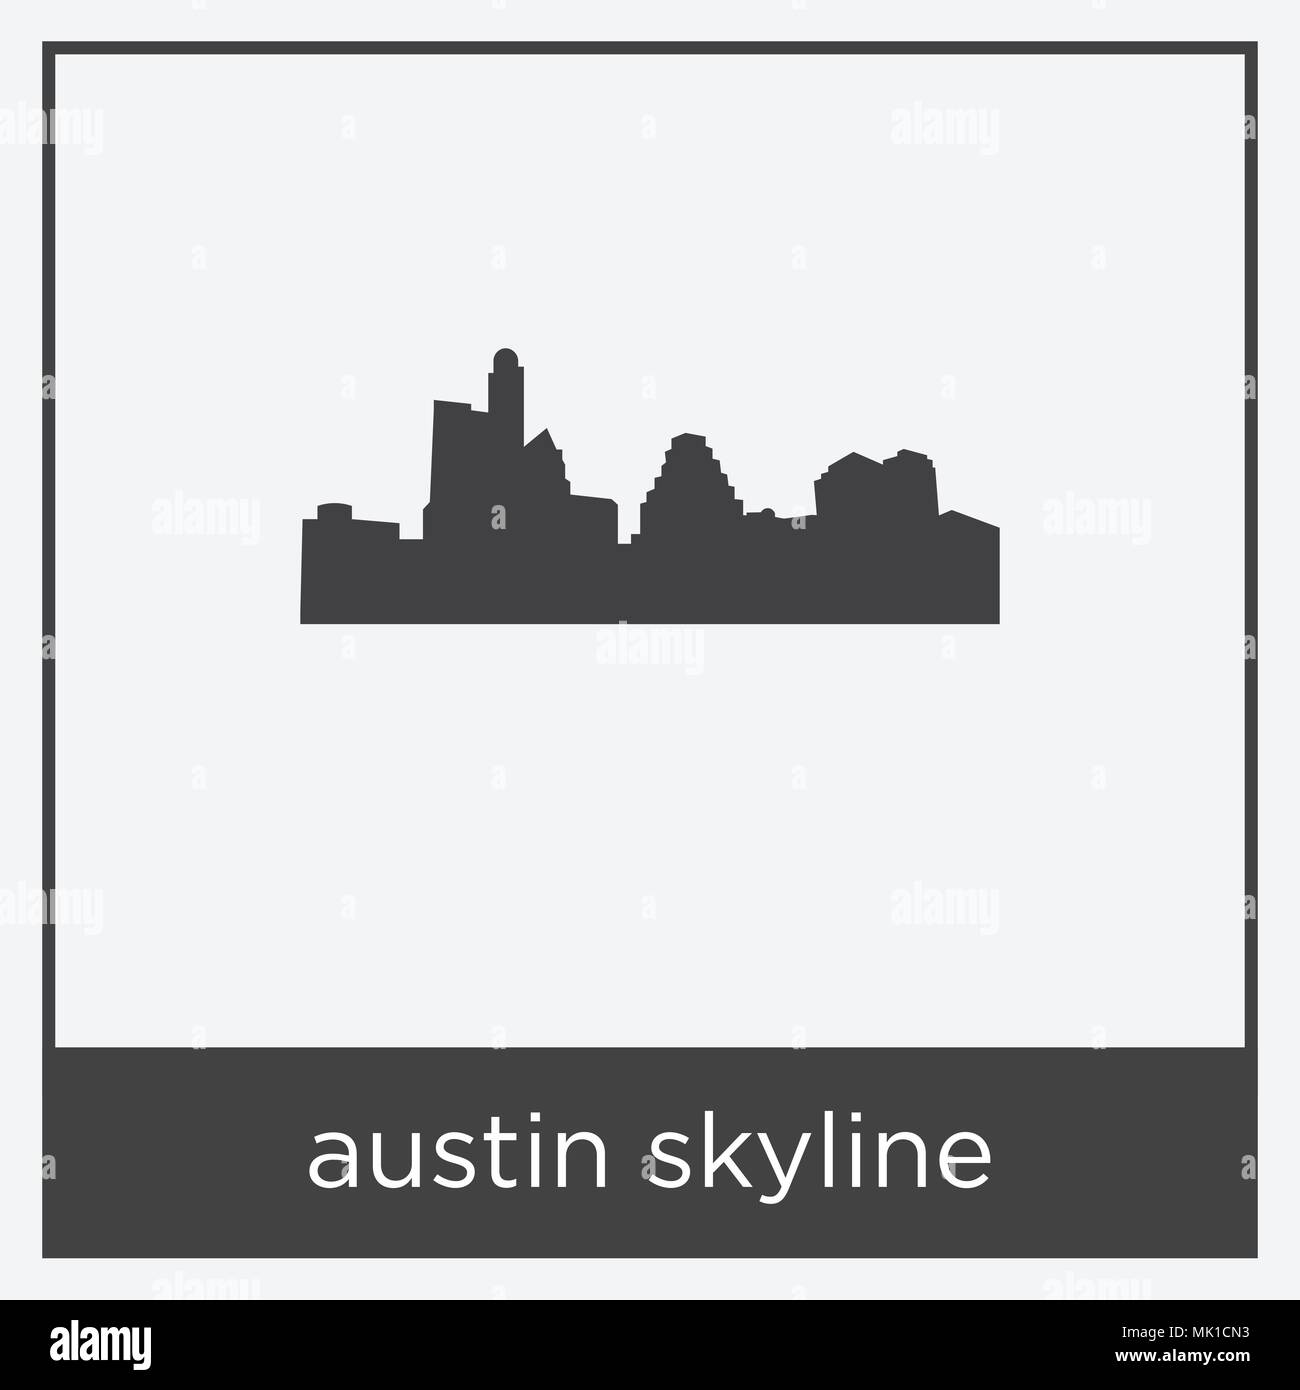 austin skyline icon isolated on white background with gray frame ...